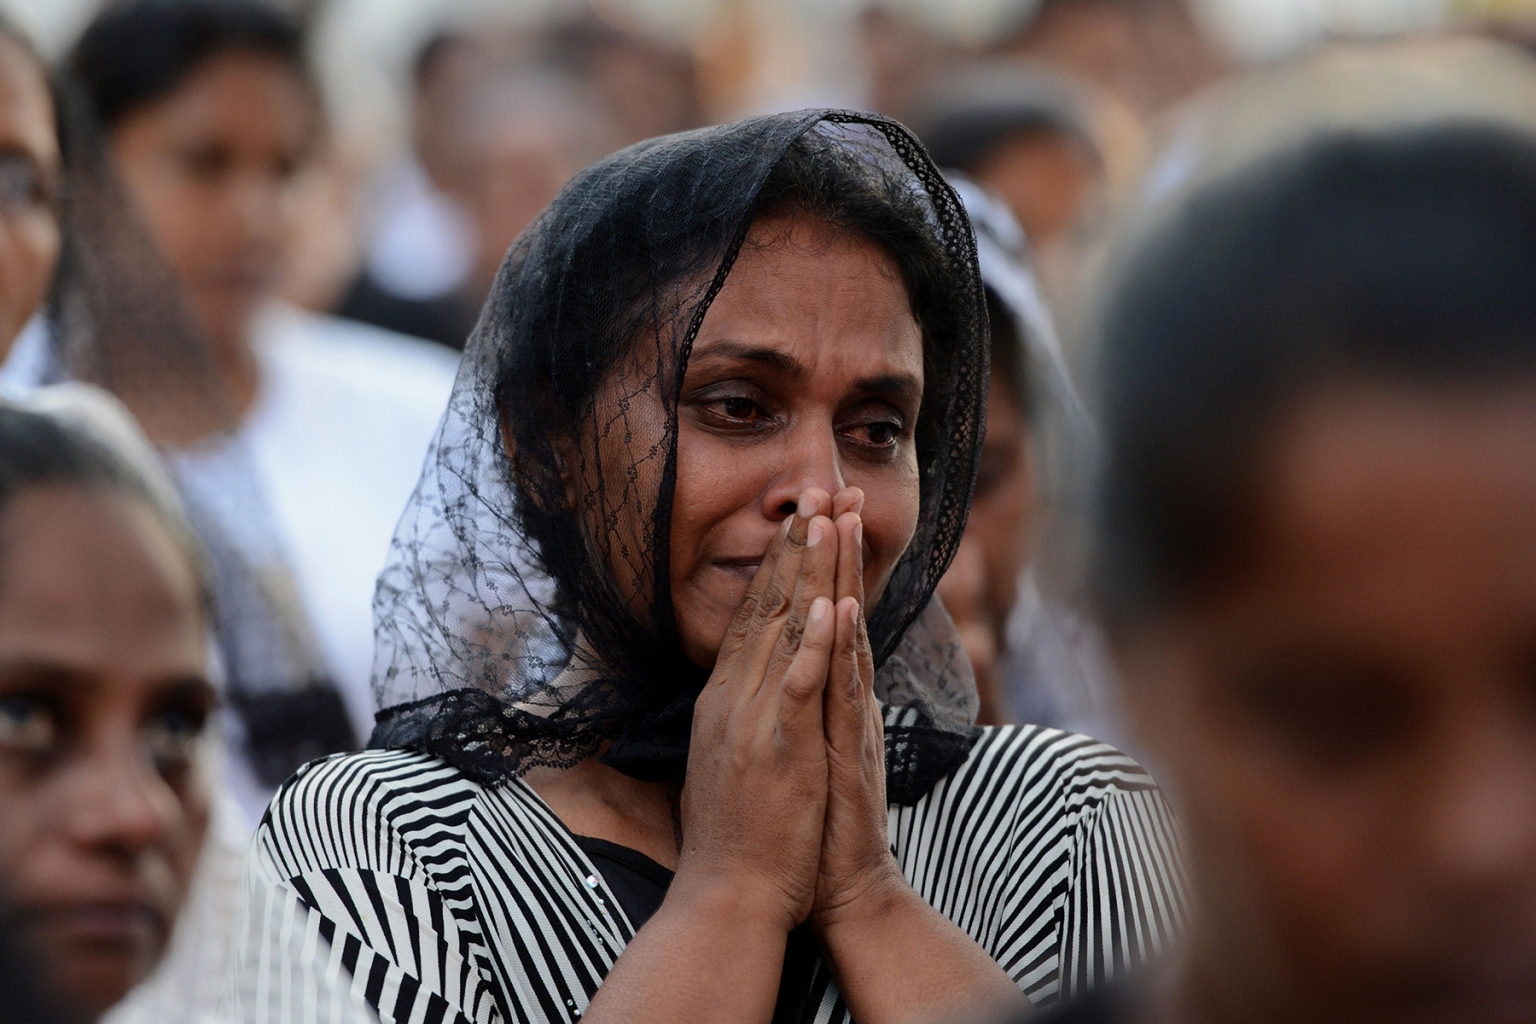 A Sri Lankan Christian cries as she prays during a Mass outside St Sebastian's Church after it was partially opened for the first time since the Easter Sunday attacks in Negombo on May 9. ISHARA S. KODIKARA/AFP/Getty Images